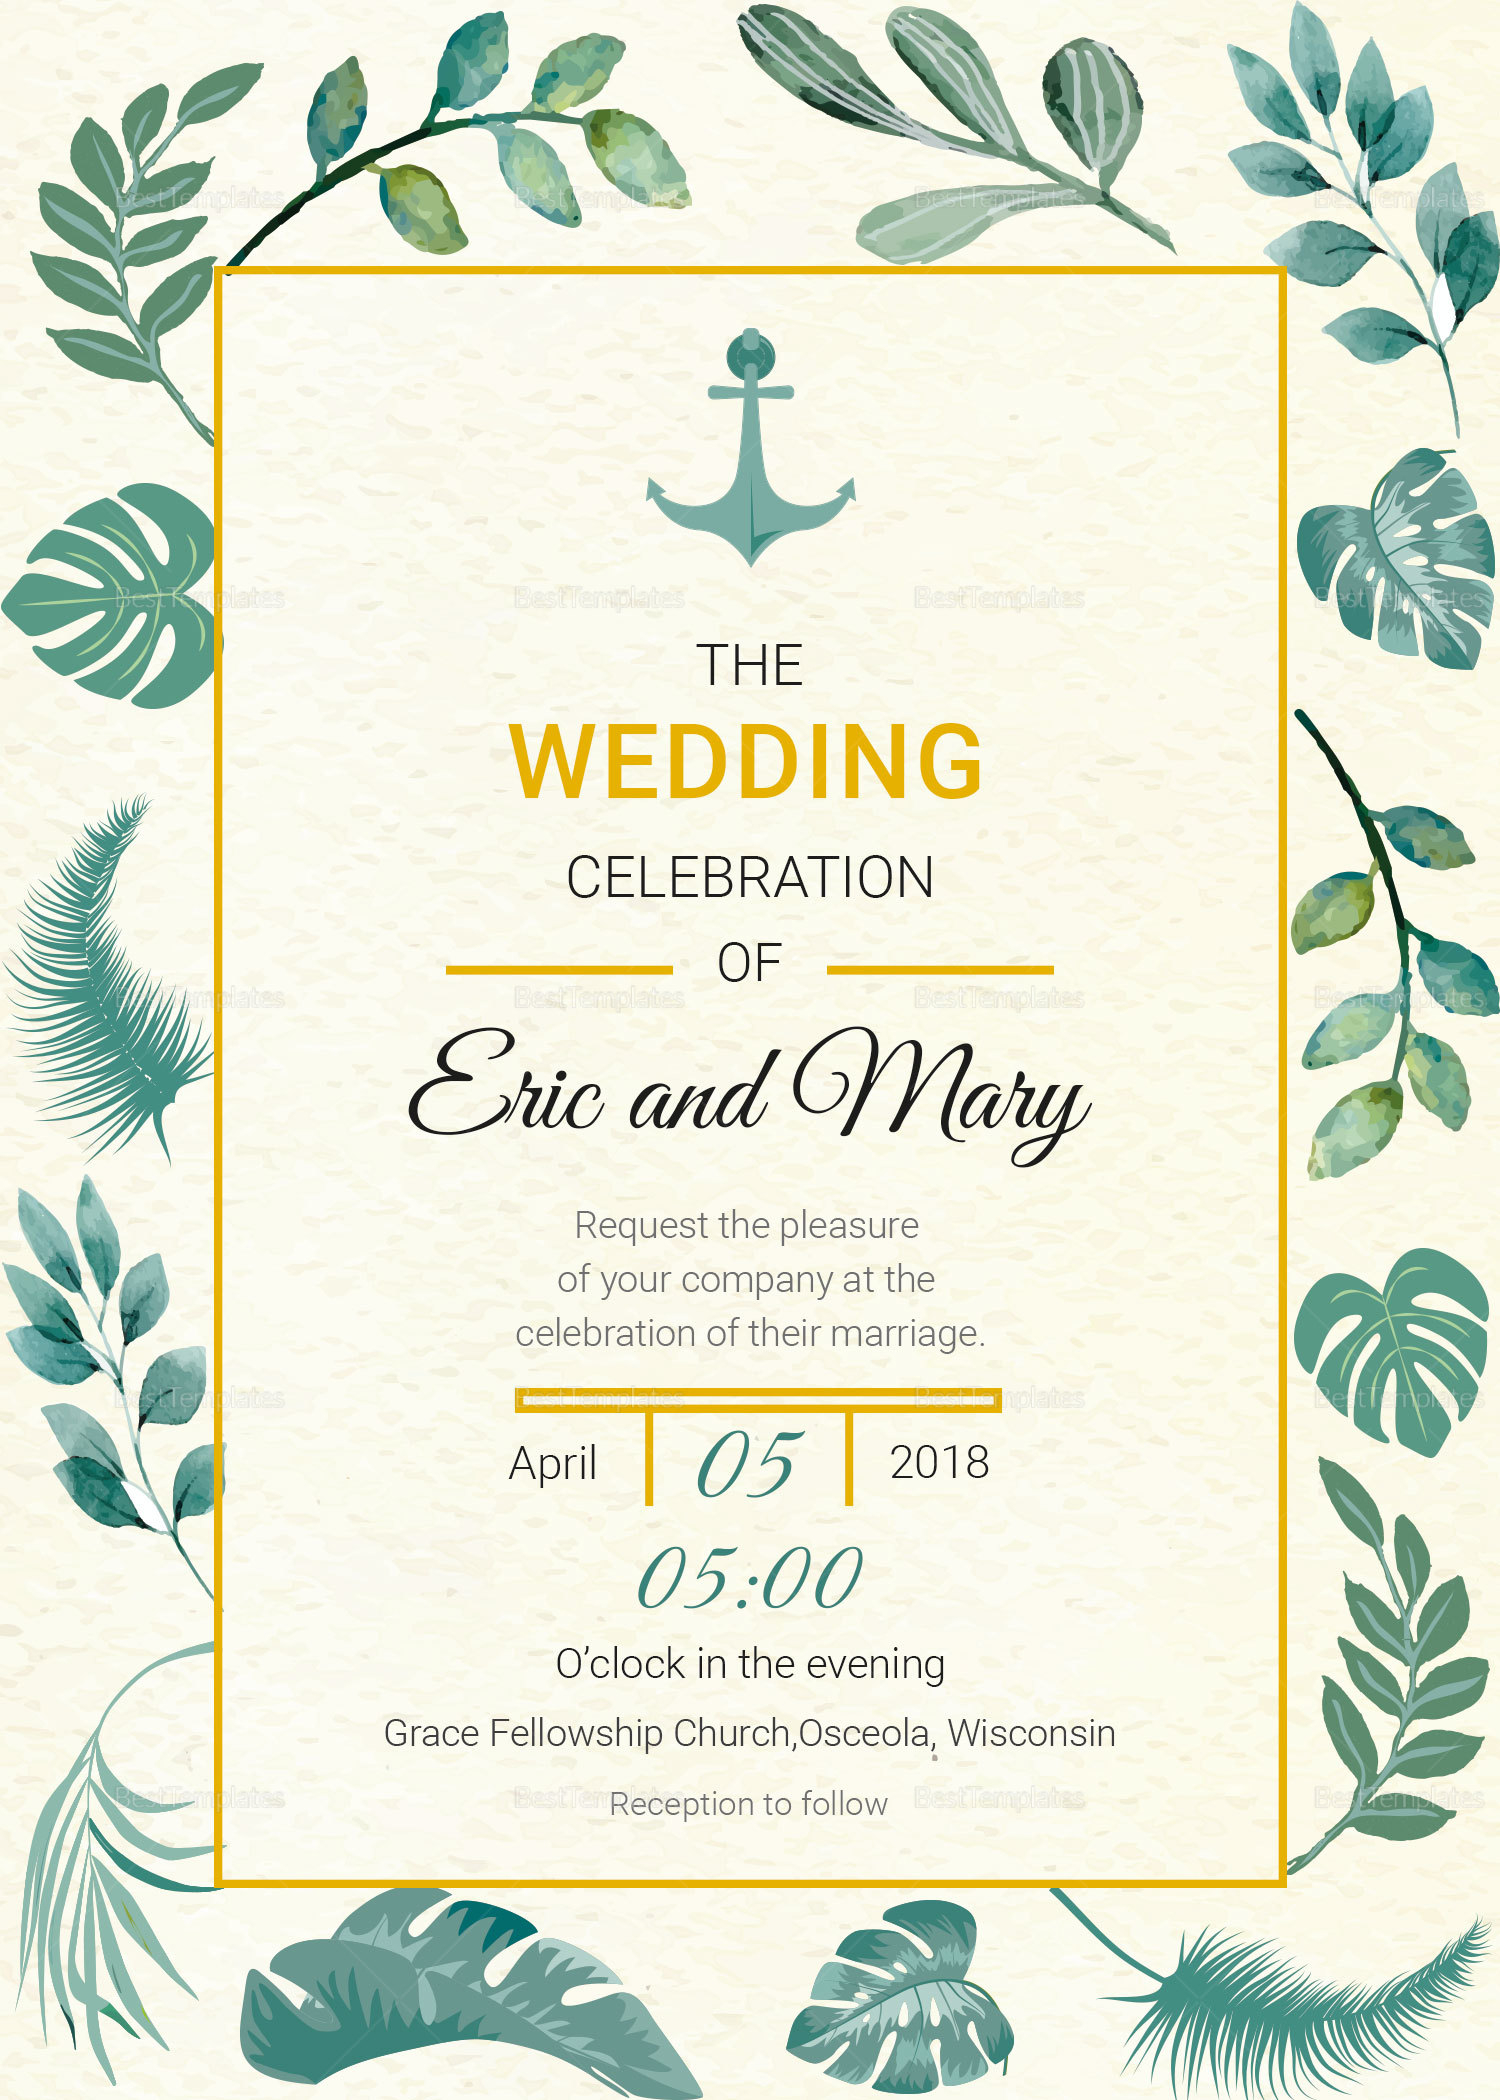 Nautical Wedding Invitations.Nautical Wedding Invitation Card Template